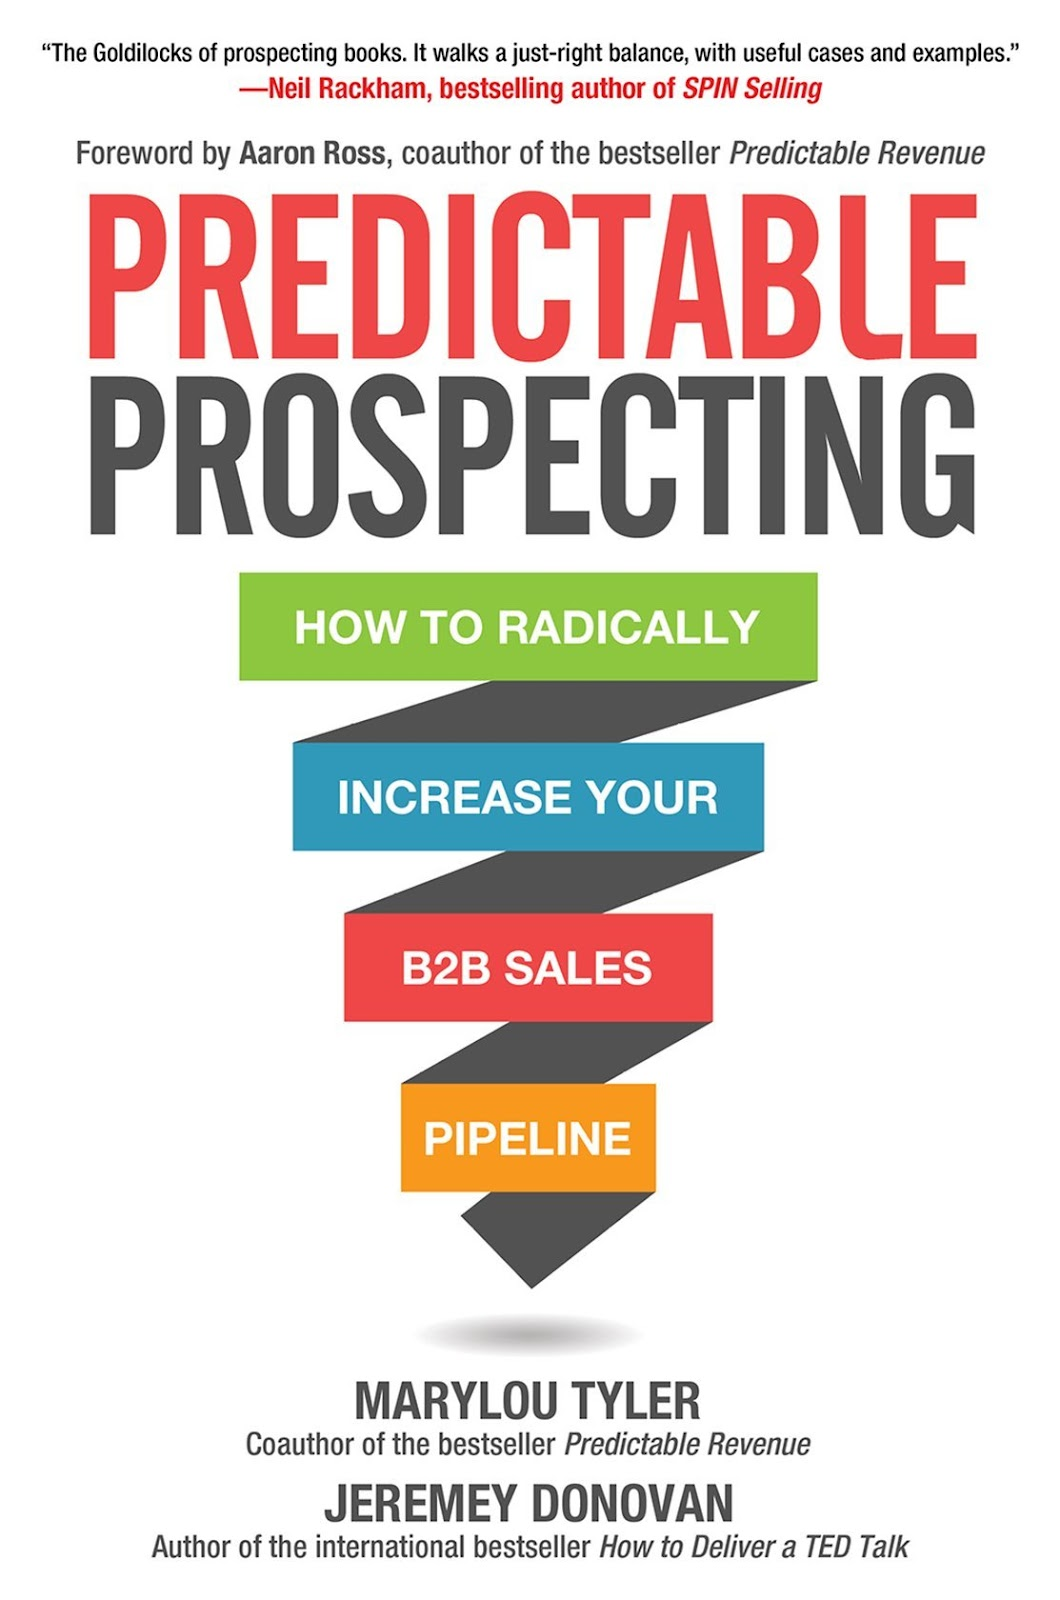 Predictable Prospecting: How to Radically Increase Your B2B Sales Pipeline sales book.